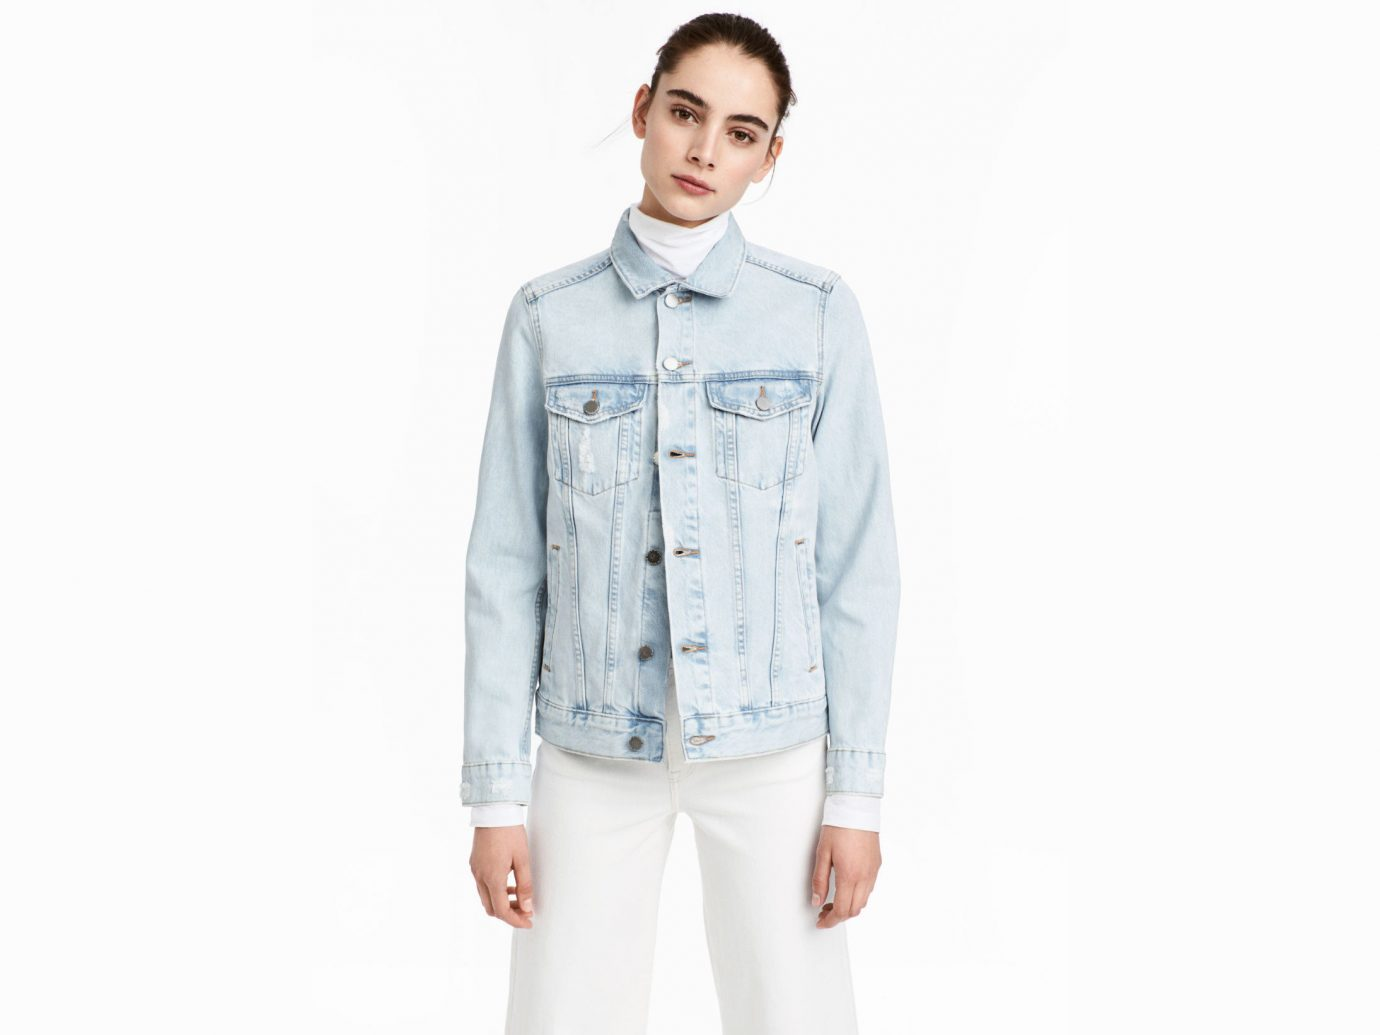 Style + Design Travel Shop person standing clothing wearing indoor denim posing jacket sleeve outerwear uniform textile dressed fashion model jeans male work-clothing